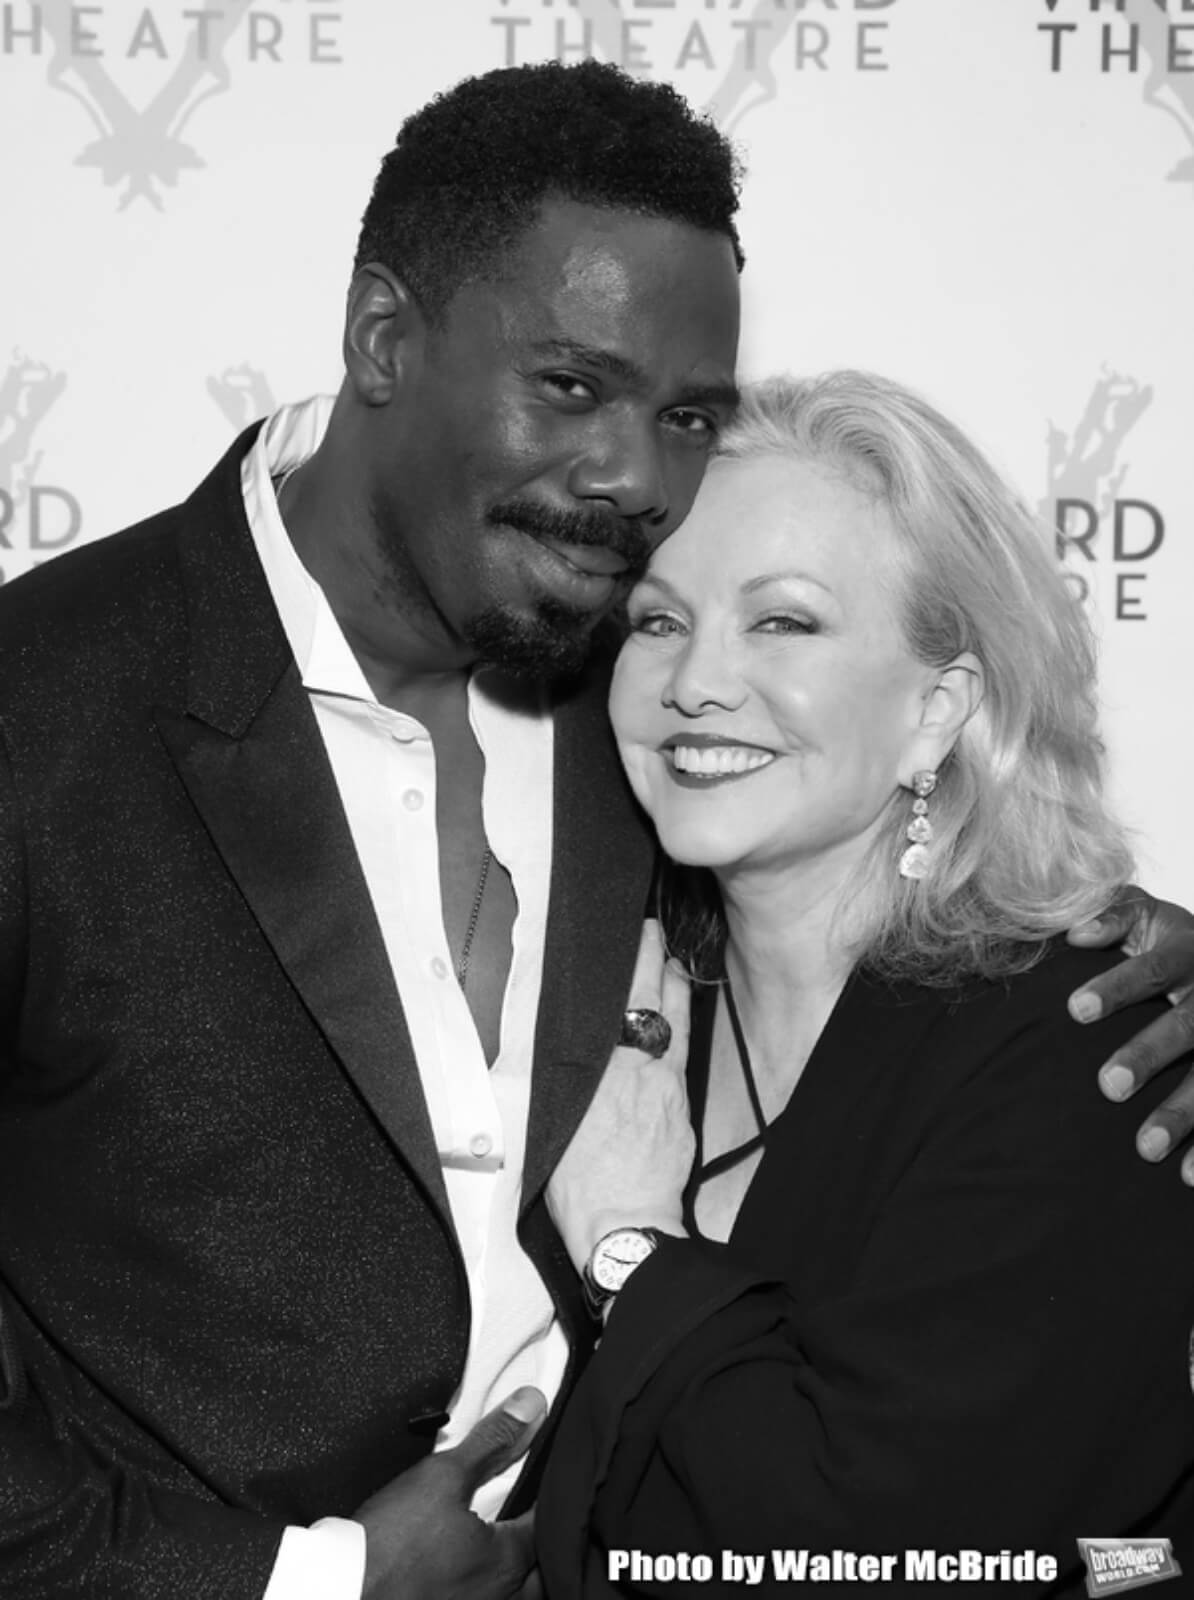 Susan Stroman and playwright Colman Domingo hug for a picture at The Vineyard Theatre